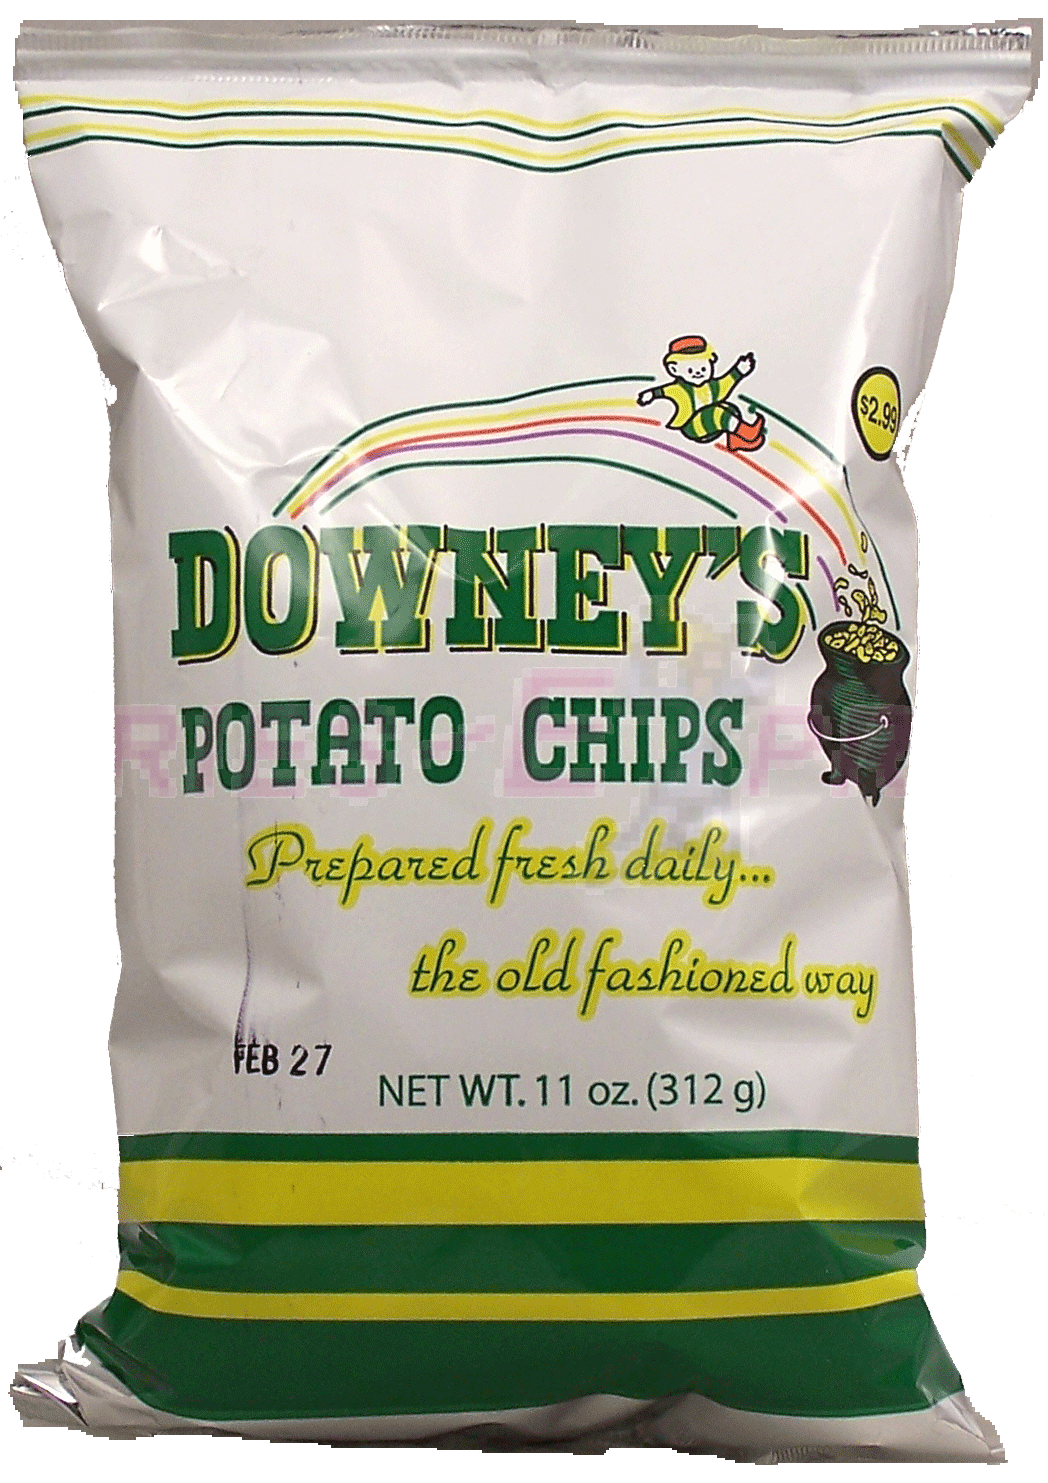 Downey S Potato Chips Are A Michigan Based Brand With An Irish Theme And Color Scheme As Evidenced By The Leprechaun Sliding Dow Potato Chips Chips Best Chips